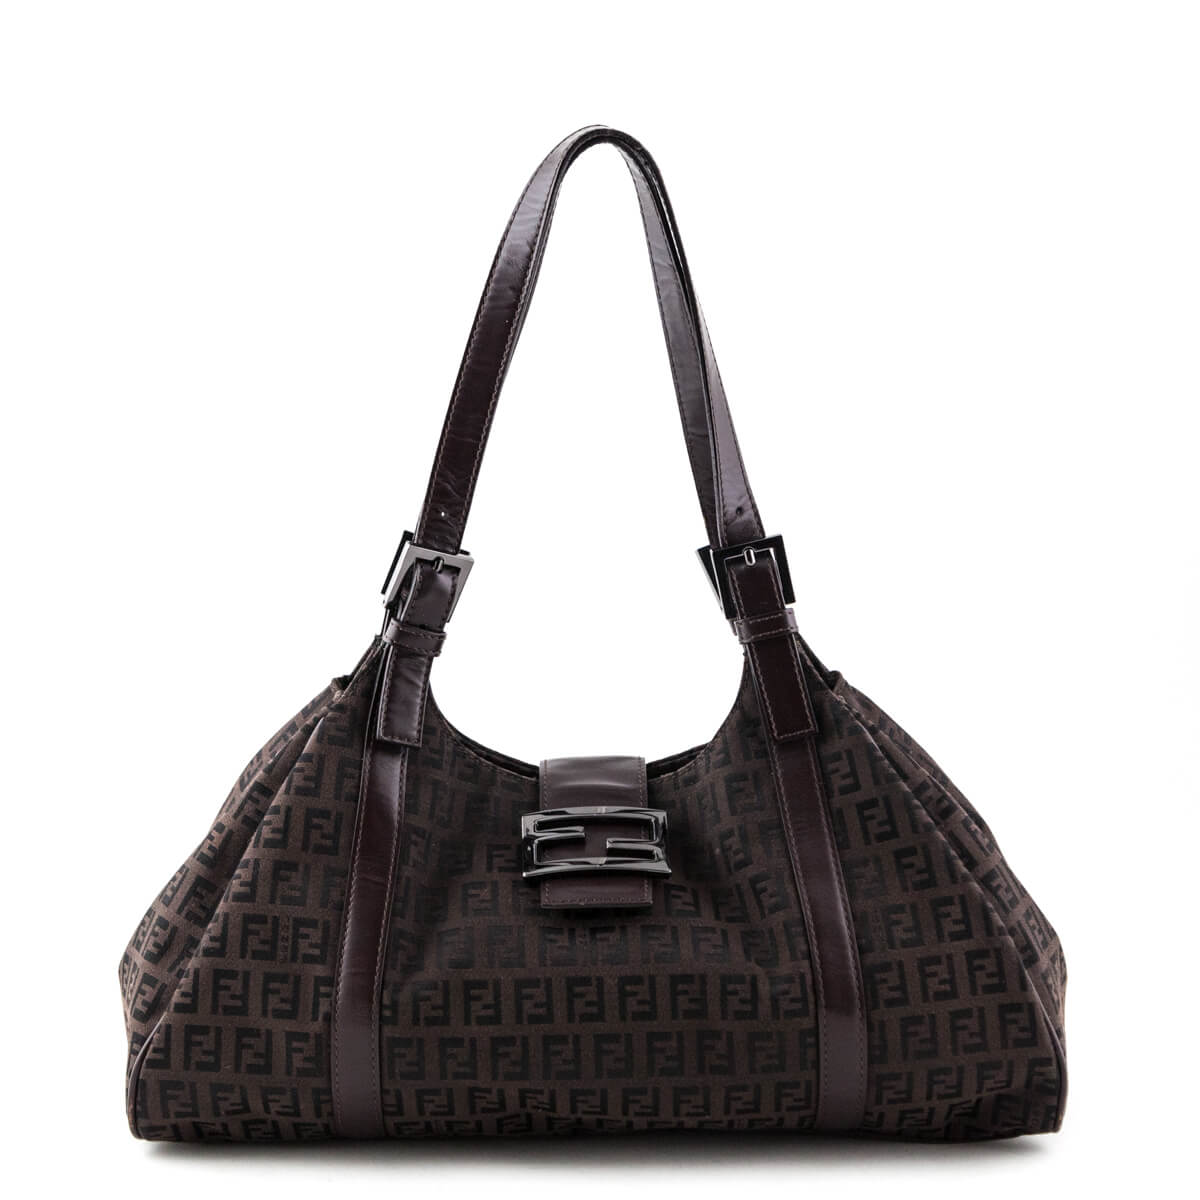 6d1e8fe12a Fendi Zucchino Canvas Sporty bag - LOVE that BAG - Preowned Authentic  Designer Handbags ...